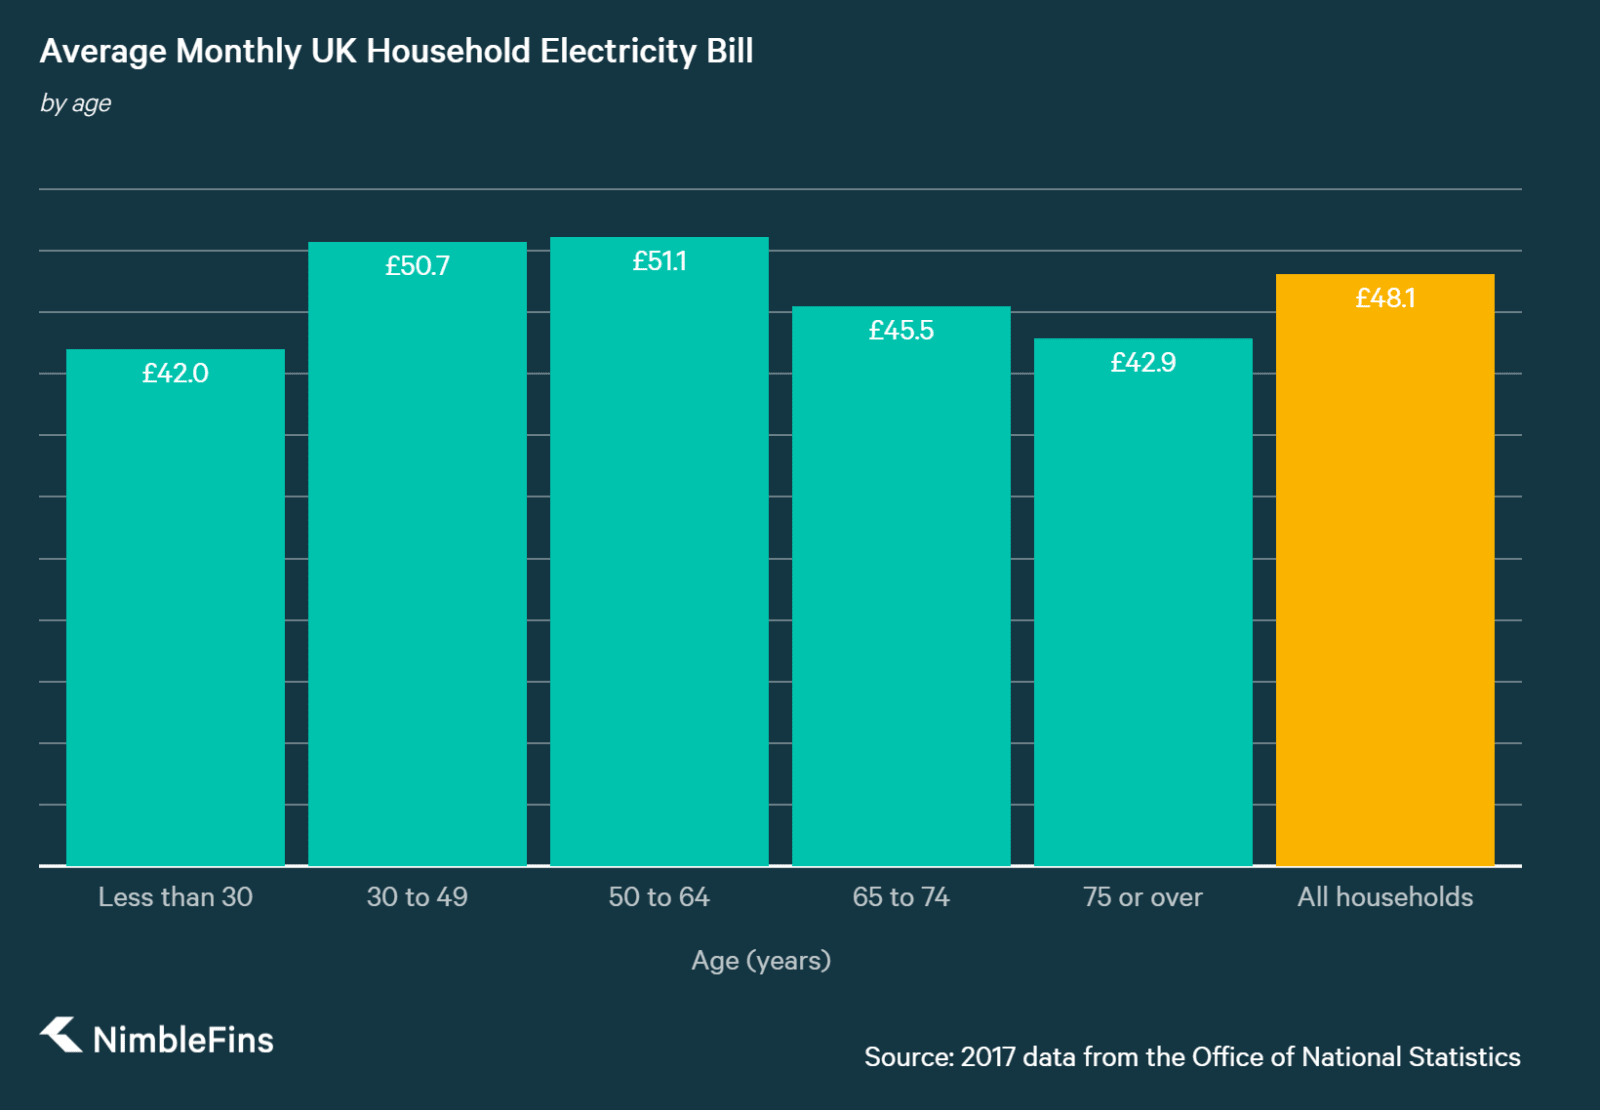 chart of UK household costs of electricity by age